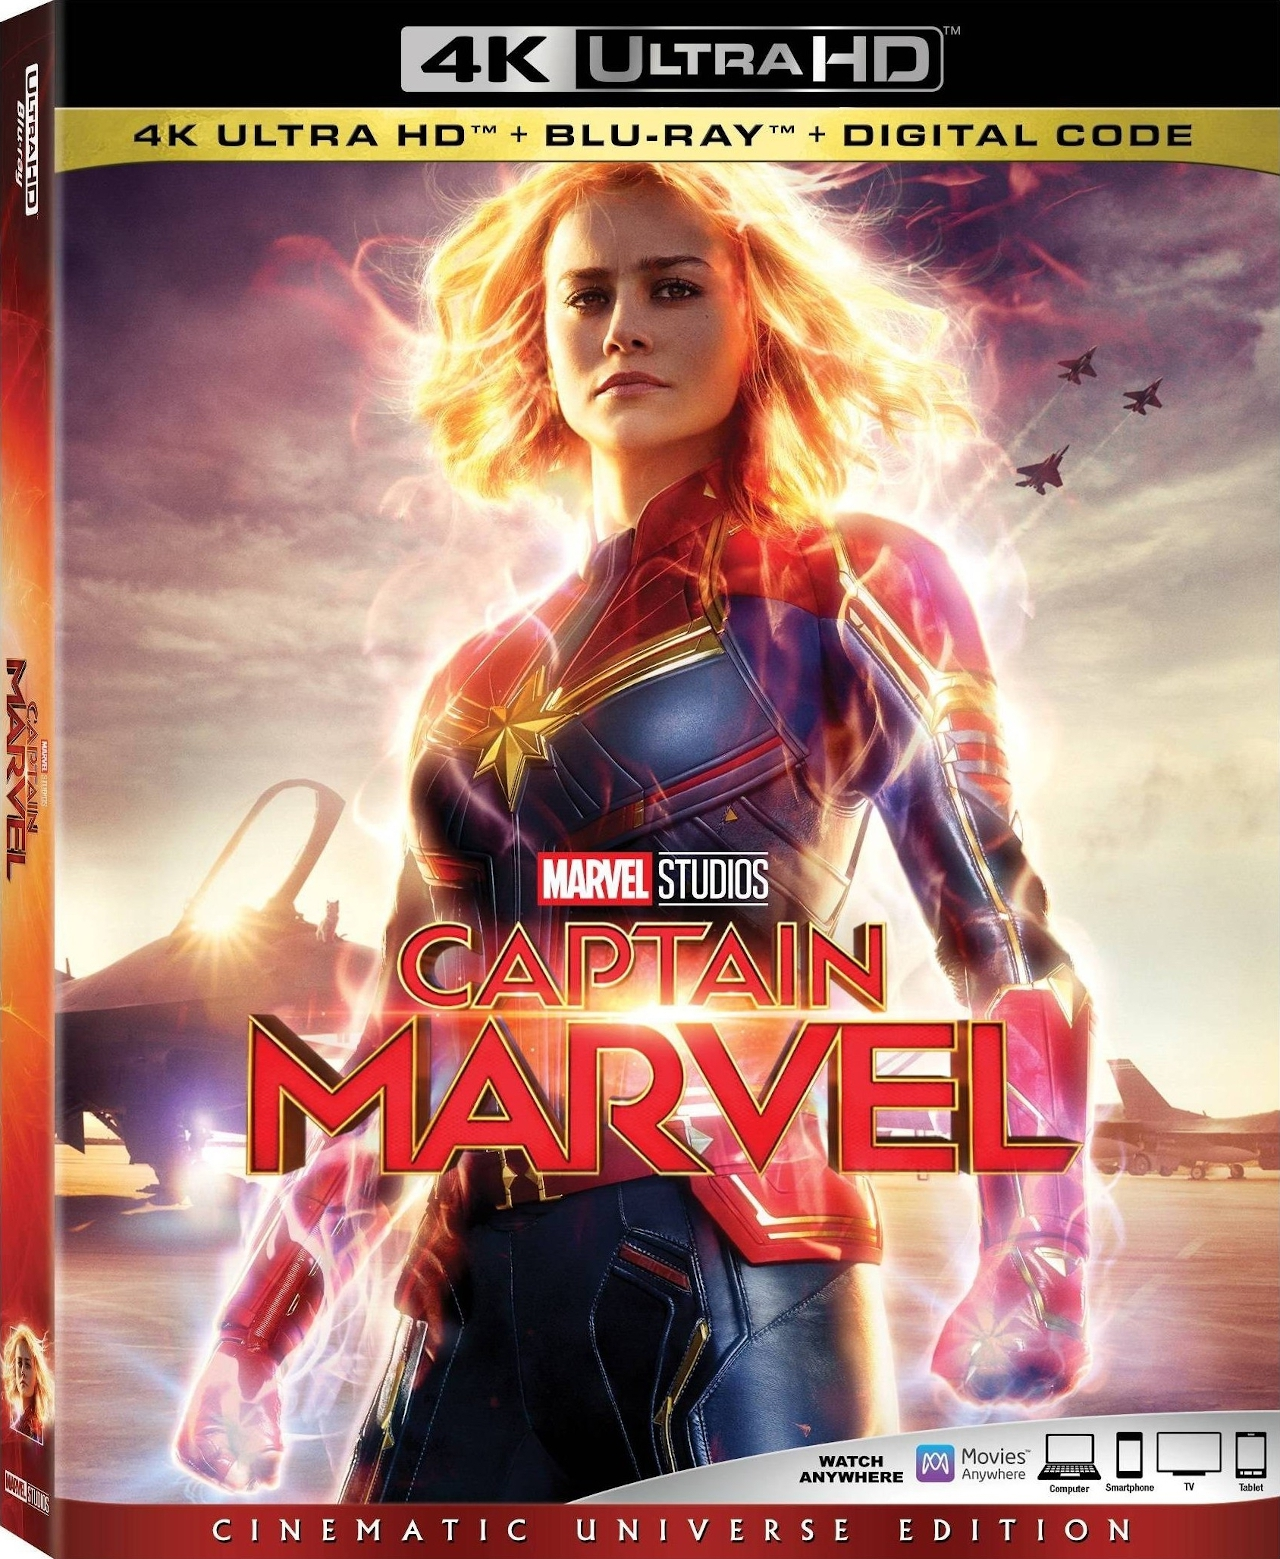 Captain Marvel 4K UHD - Best 4K Blu-ray Marvel Superhero Movies